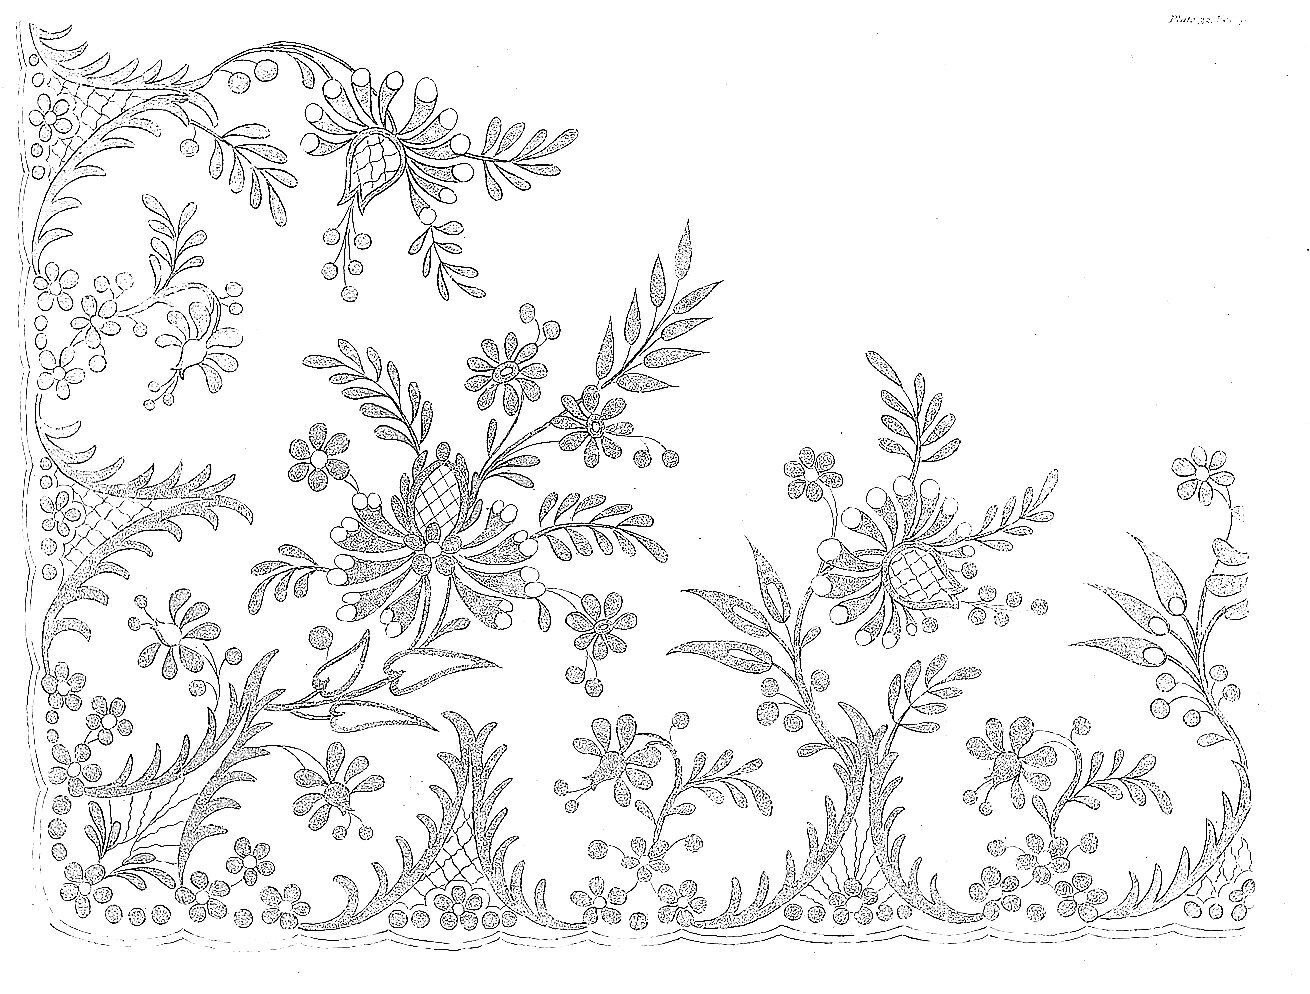 1813 Regency Needlework Pattern 4 April 1813